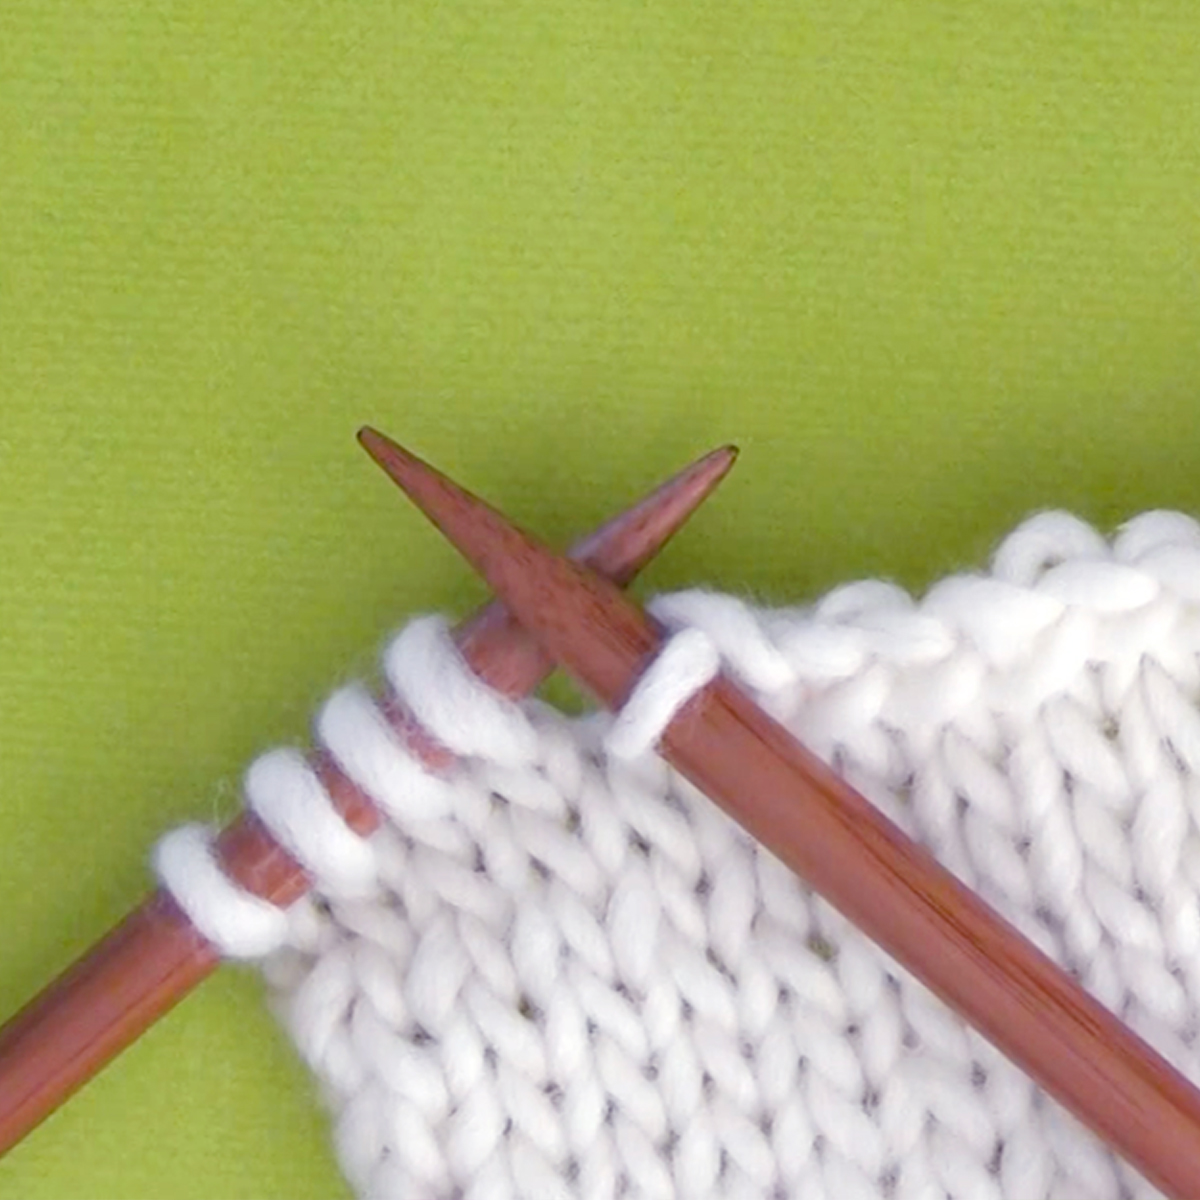 Knitted swatch of white yarn in stockinette stitch pattern with two wooden knitting needles.